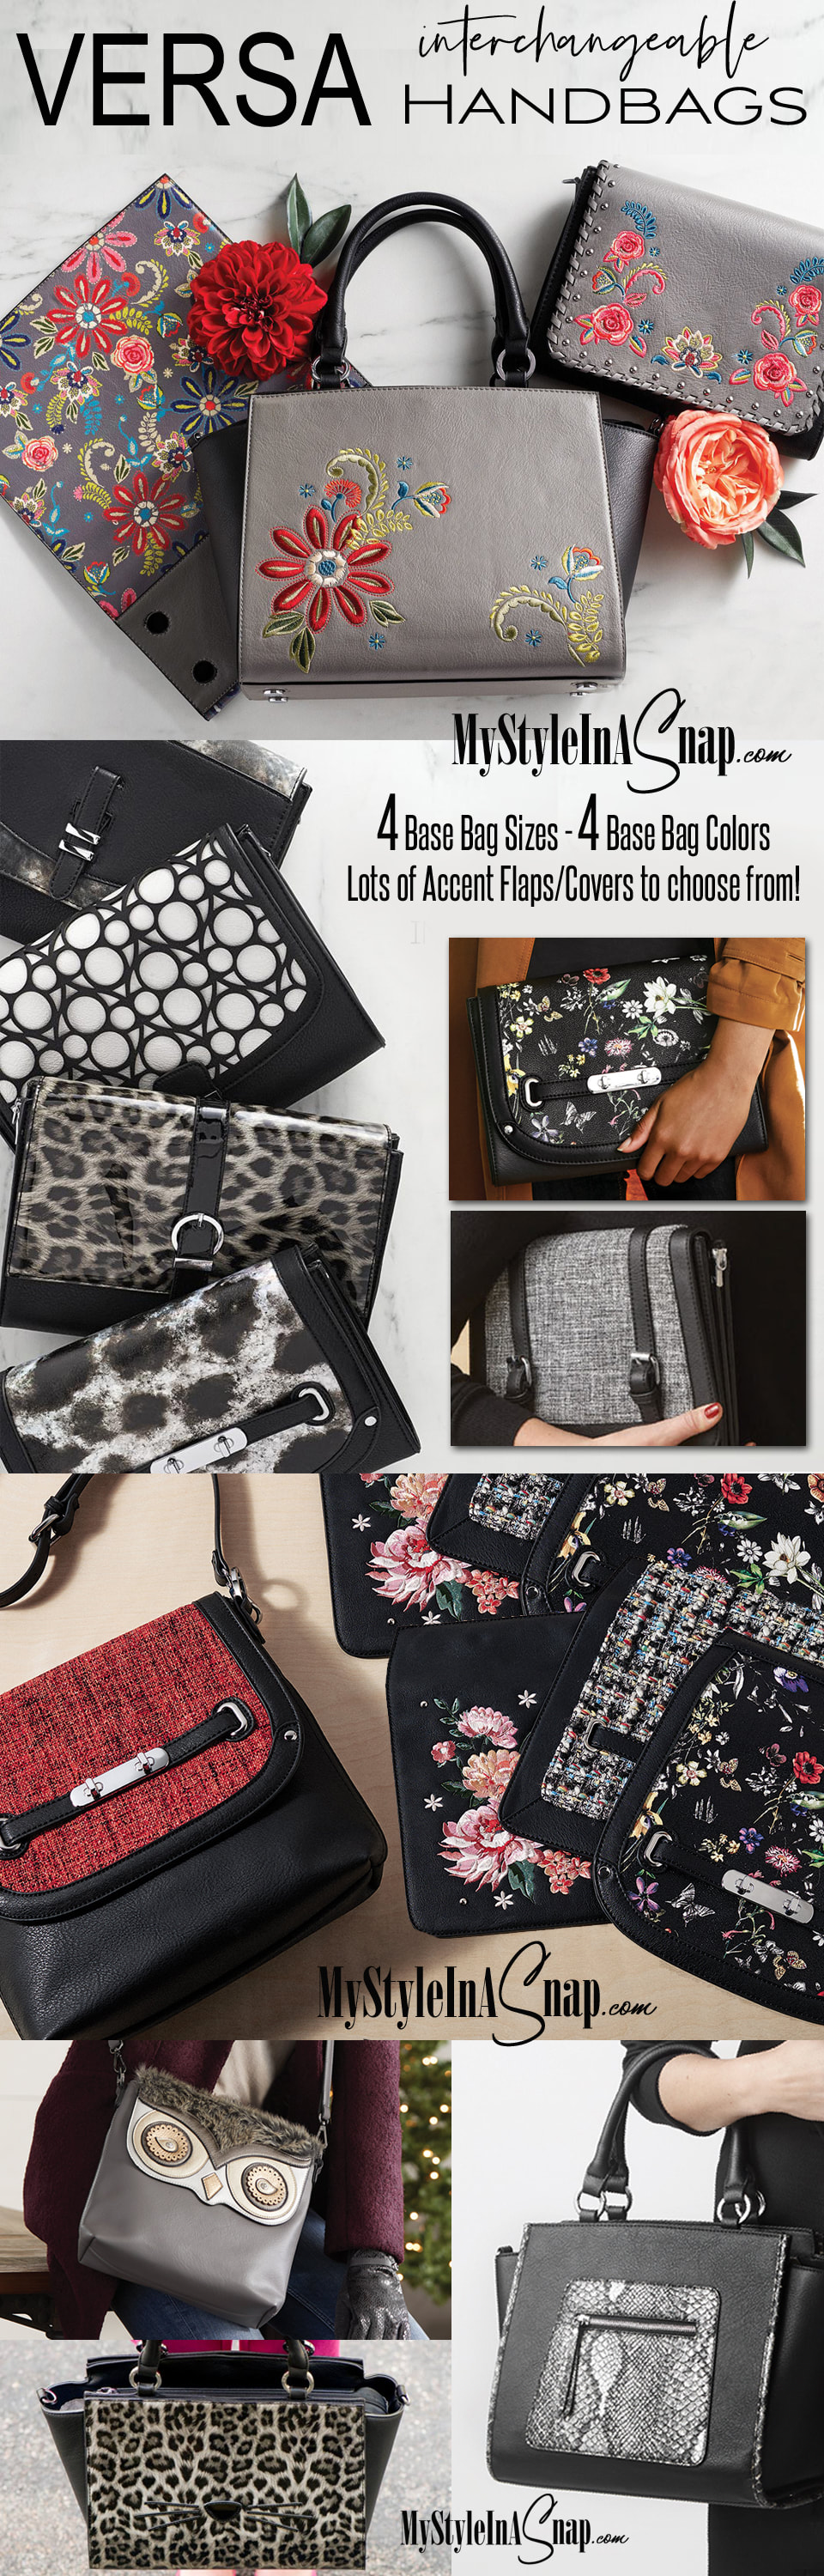 INTERCHANGEABLE HANDBAGS! The Versa Collection offers 4 Base Bag sizes / 4 Base Bag Colors and LOTS of Accent Flaps and Wraparound Covers to choose from! Shop MyStyleInASnap.com to discover how to create the purse of your dreams! LOVE IT? Join us and get it all at consultant prices.